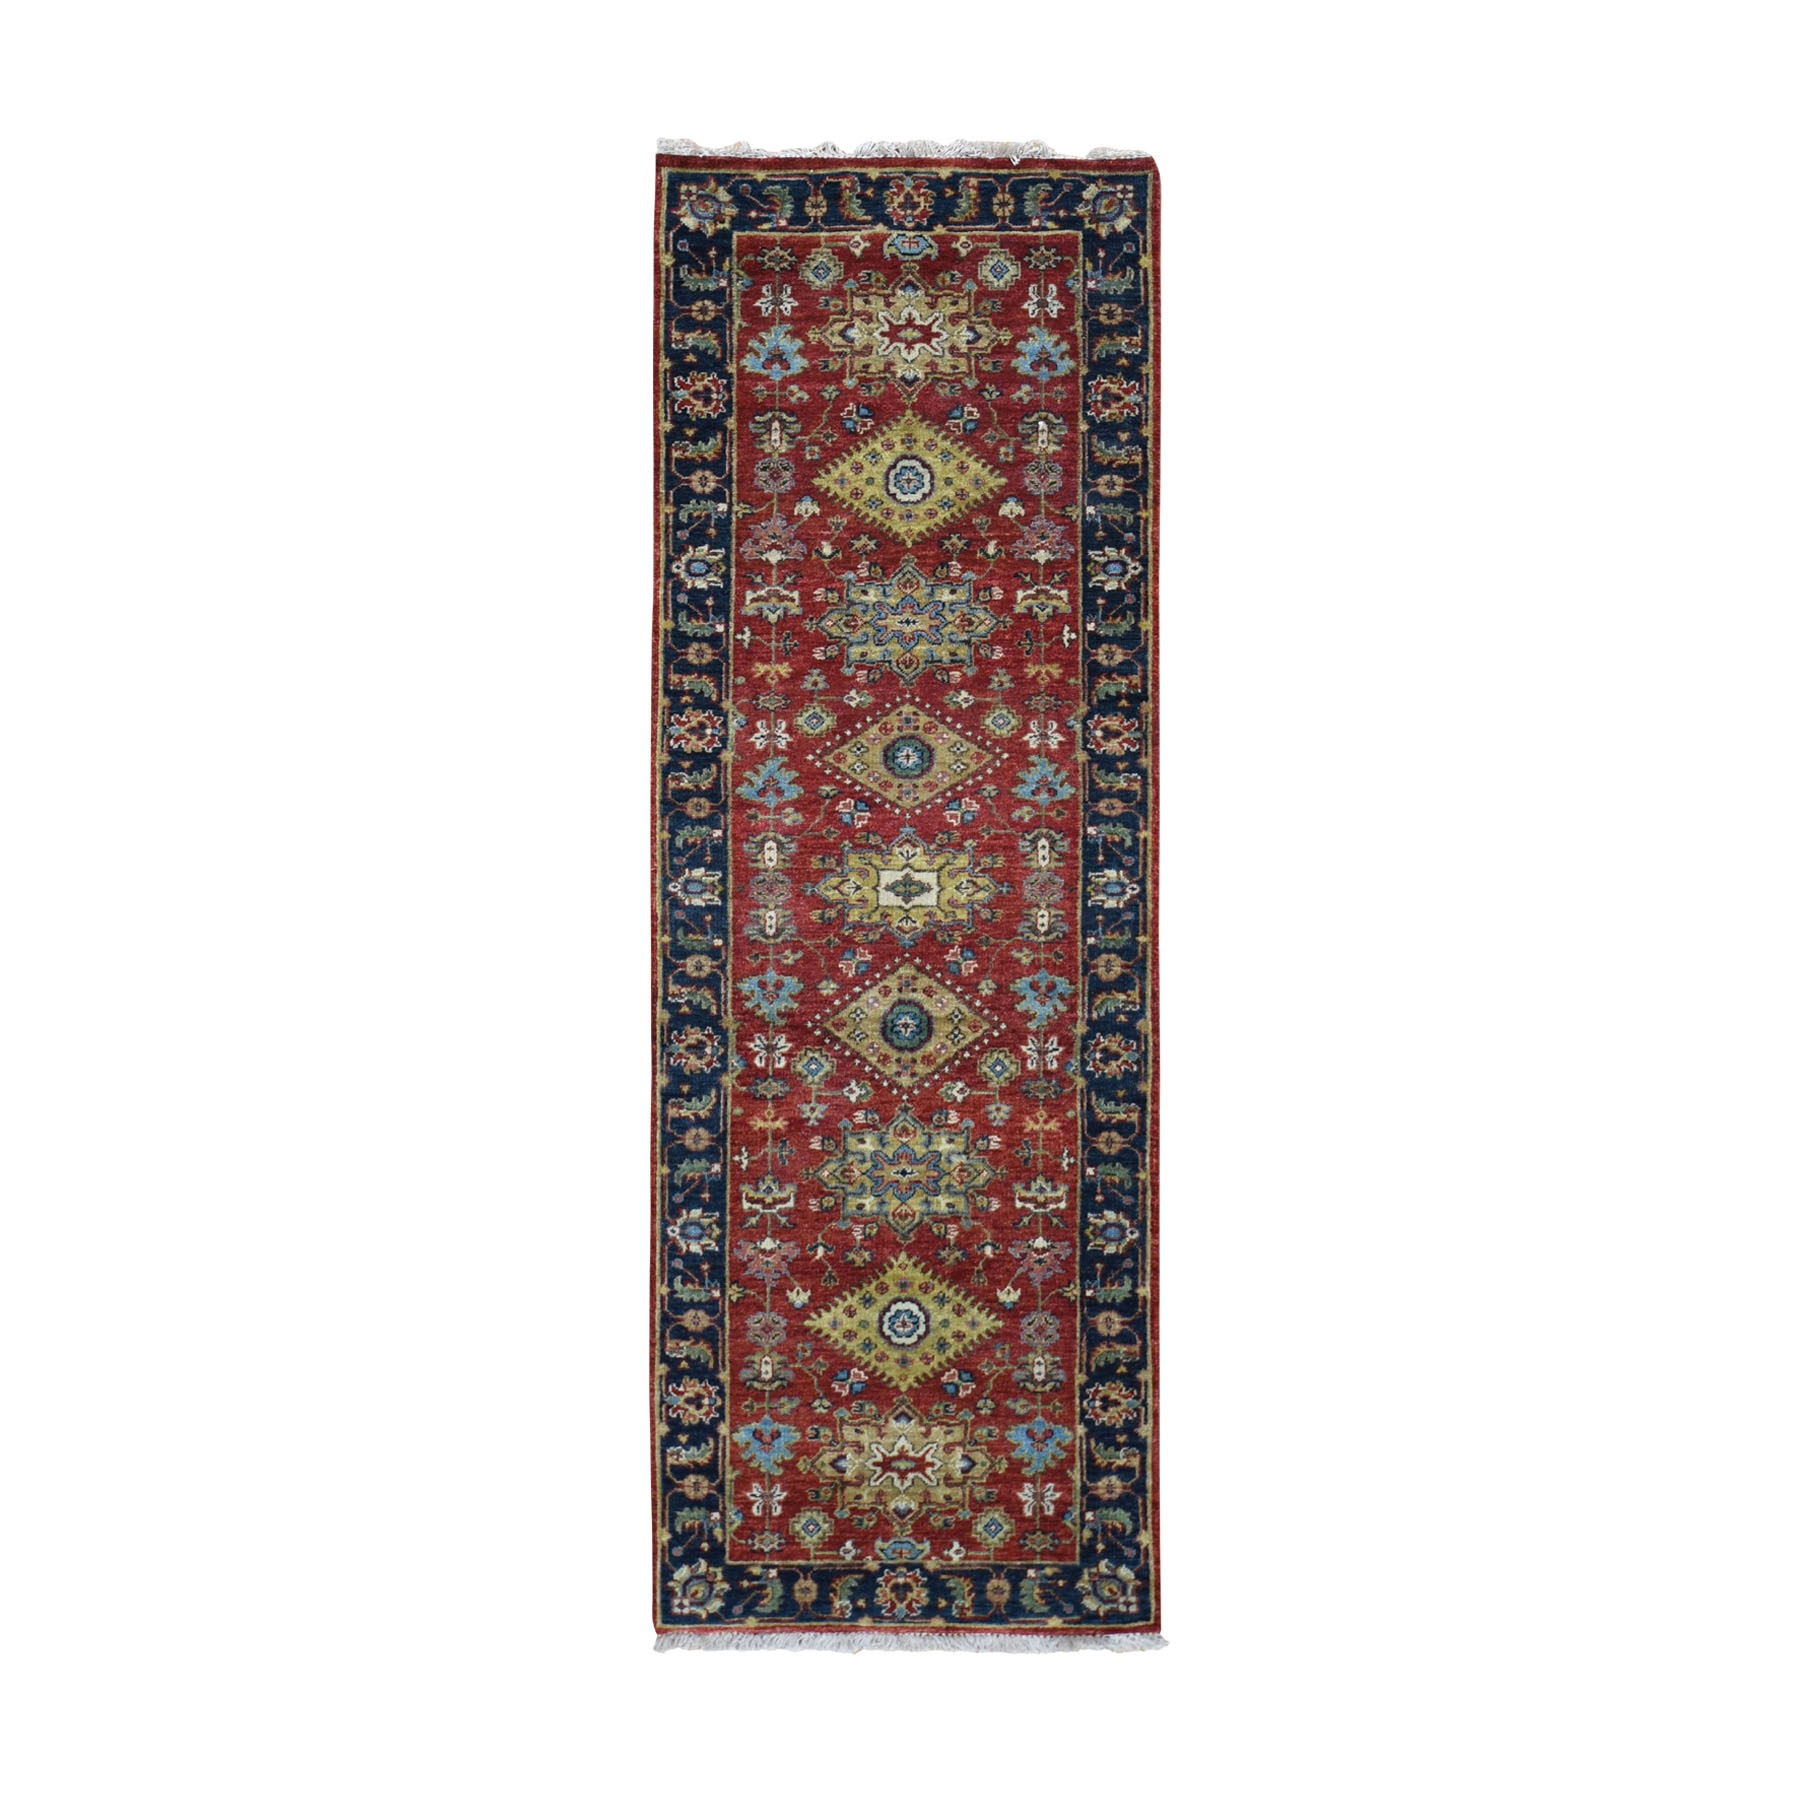 "2'6""x8' Red Karajeh Design Runner Pure Wool Hand Knotted Oriental Rug"